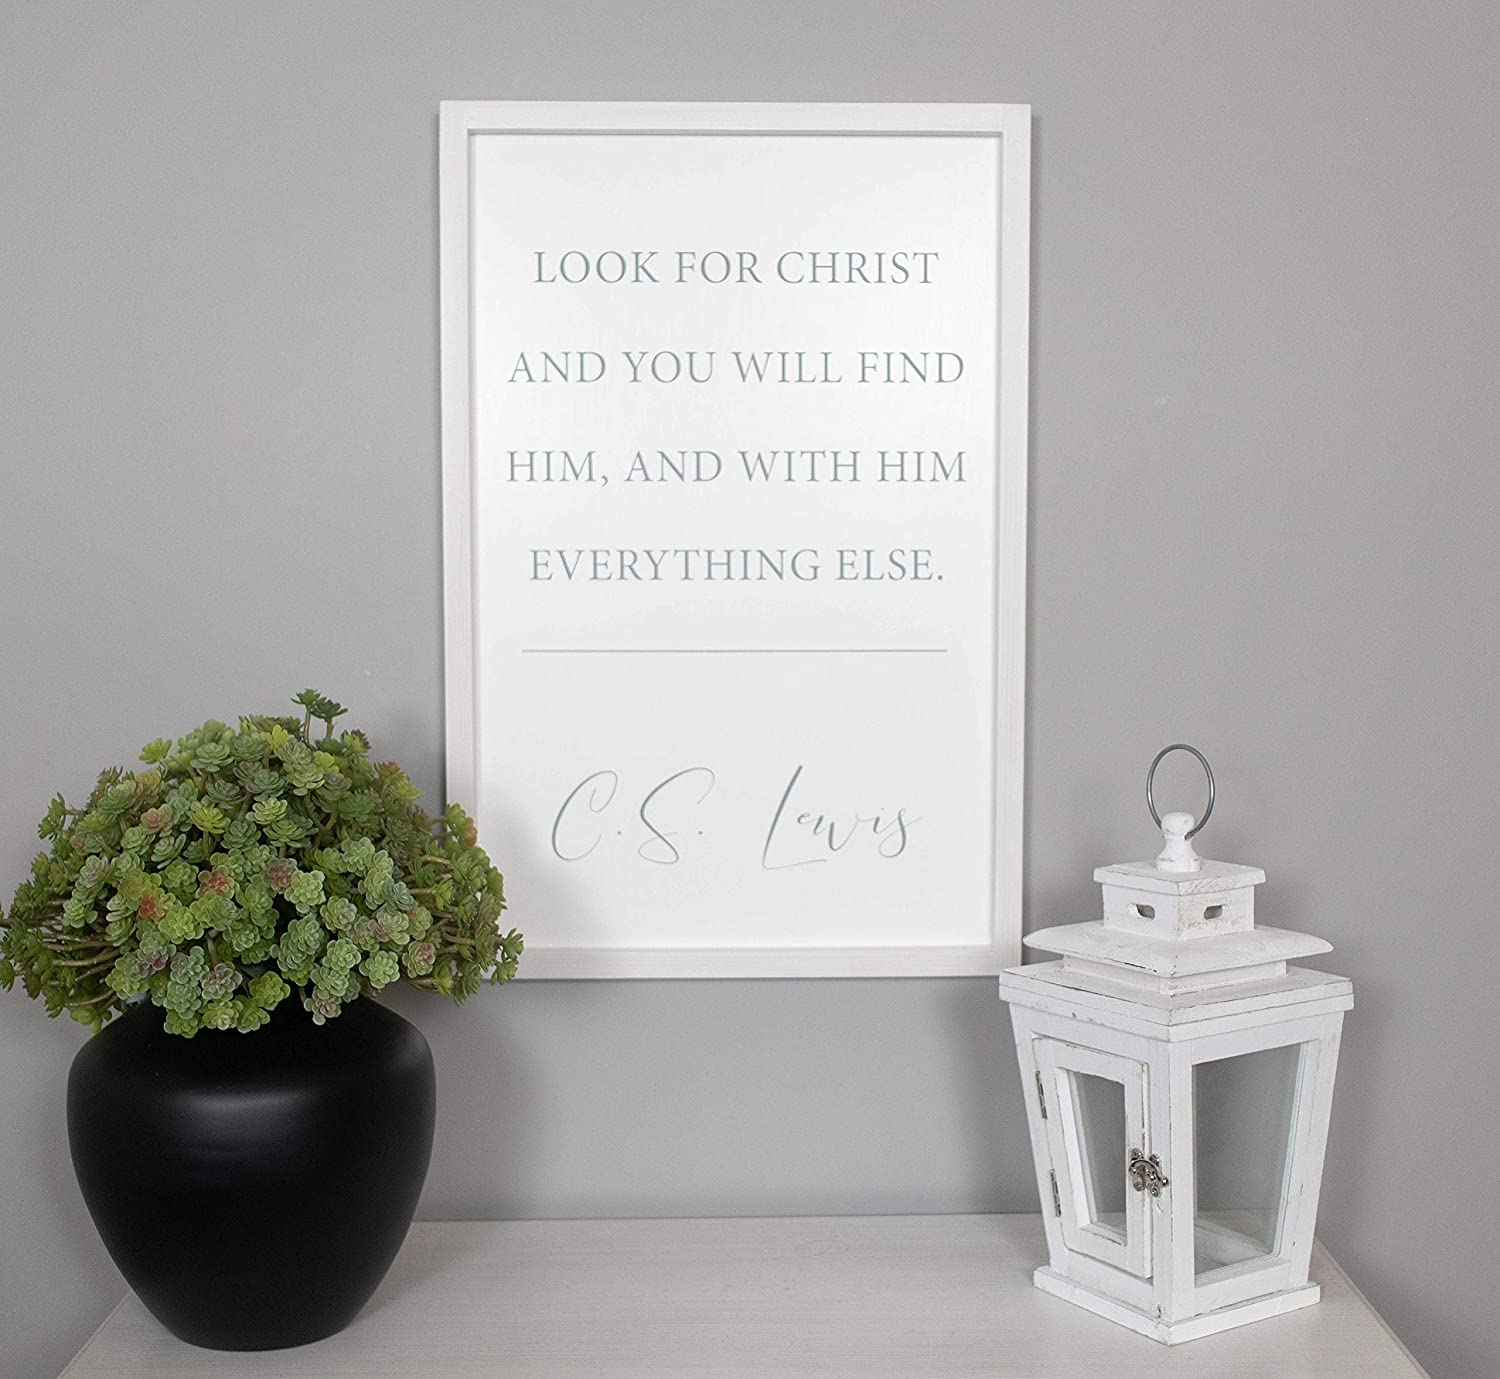 Flowershave357 Look for Christ Sign CS Lewis Quote Sign CS Lewis Wall Art Christian Signs Christian Wall Decor Farmhouse Wood Signs Wall Art